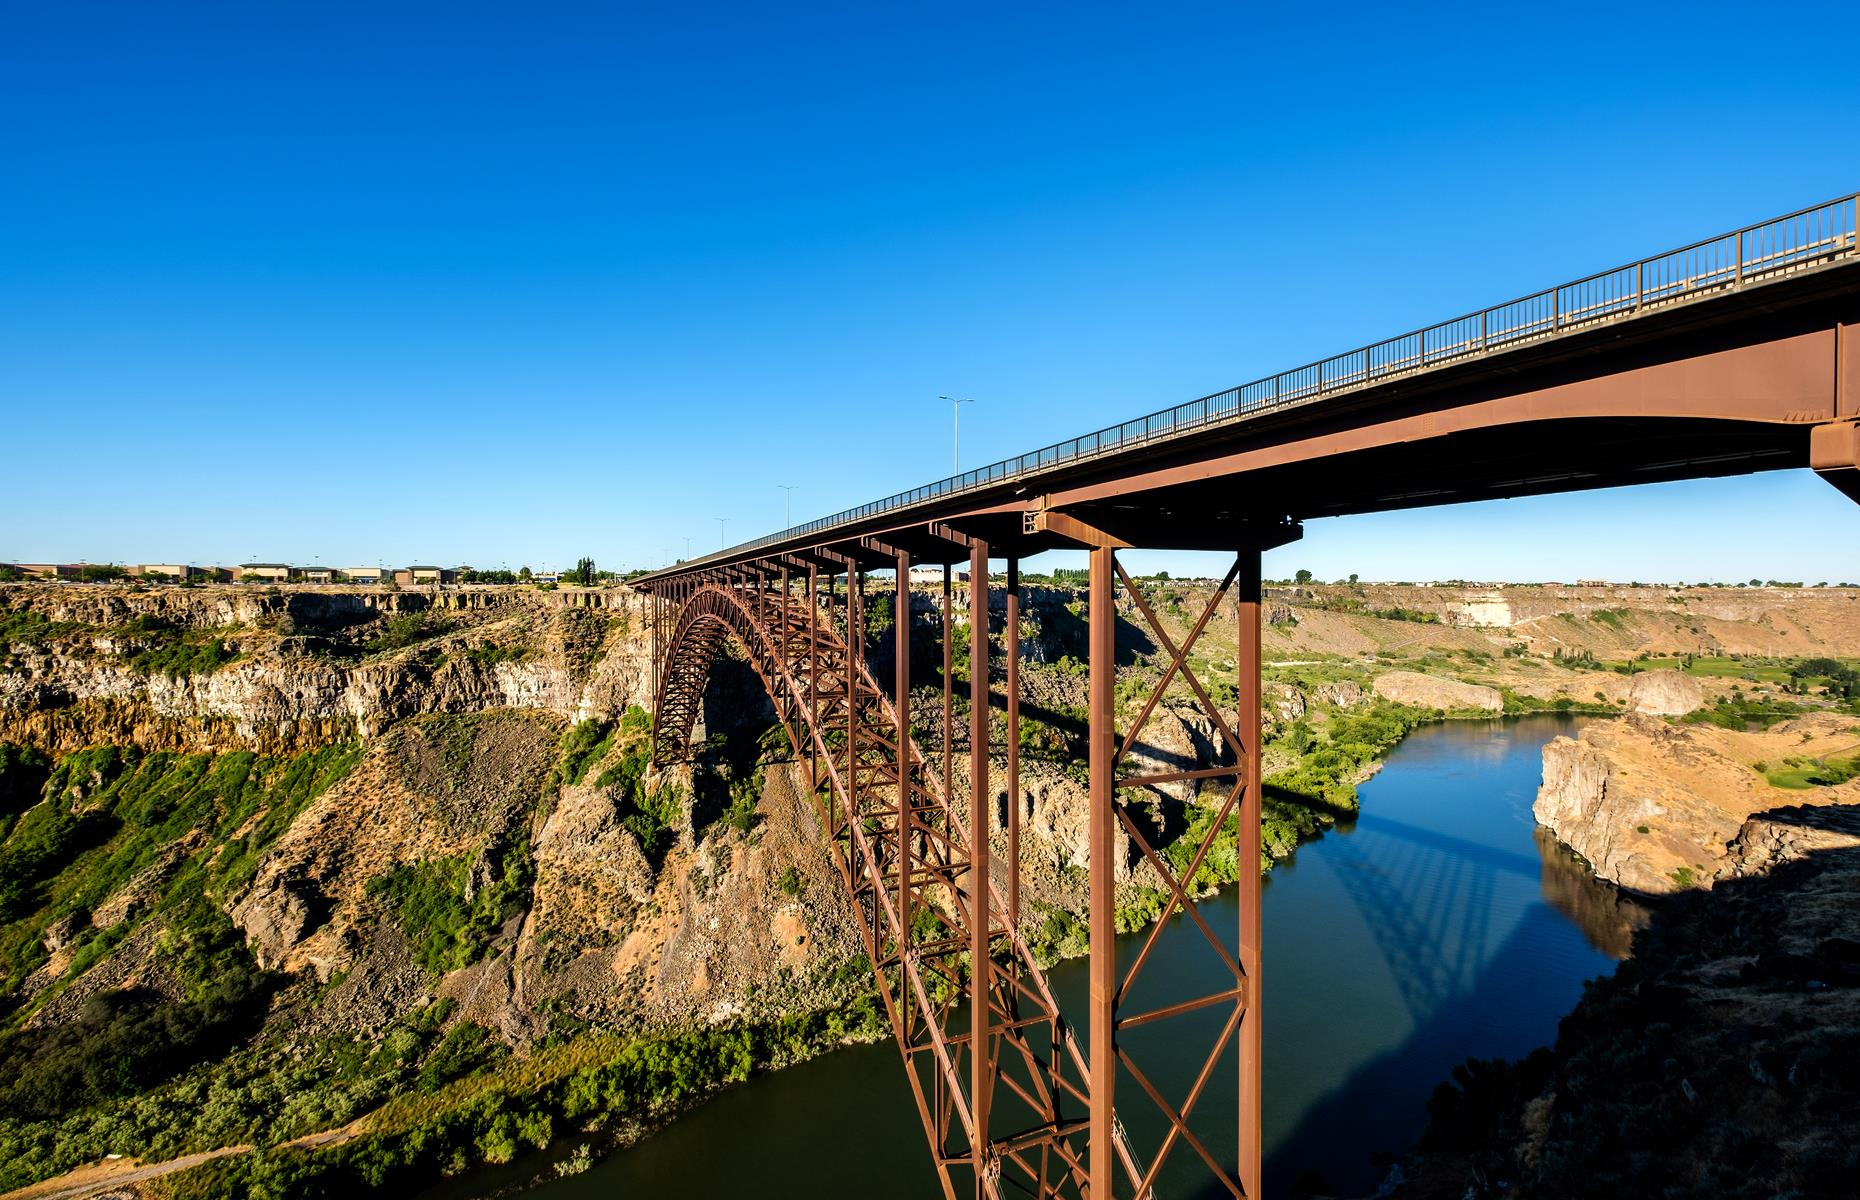 Slide 14 of 52: This simple but attractive truss bridge stretches over the Snake River, close to Twin Falls. It's almost 1,500-feet (457m) long and bookended by rugged canyon. The rust-red structure is impressive whichever way you look at it.